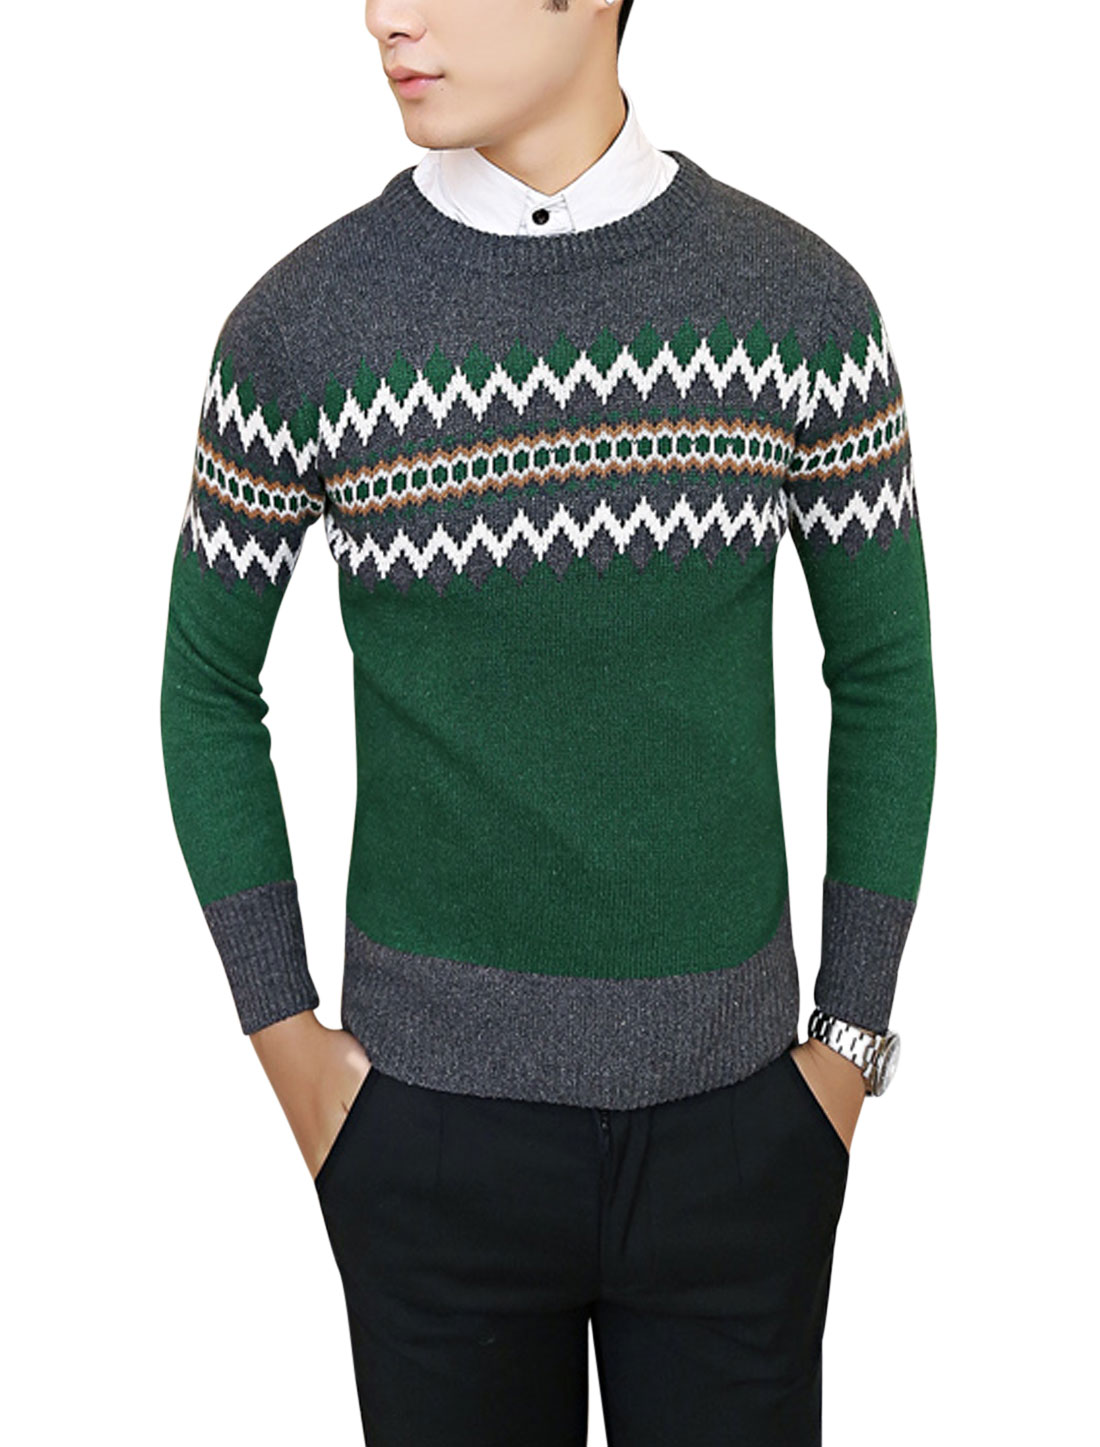 Men Geometric Zig-zag Pattern Color Block Casual Knit Shirt Dark Gray Dusty Green S